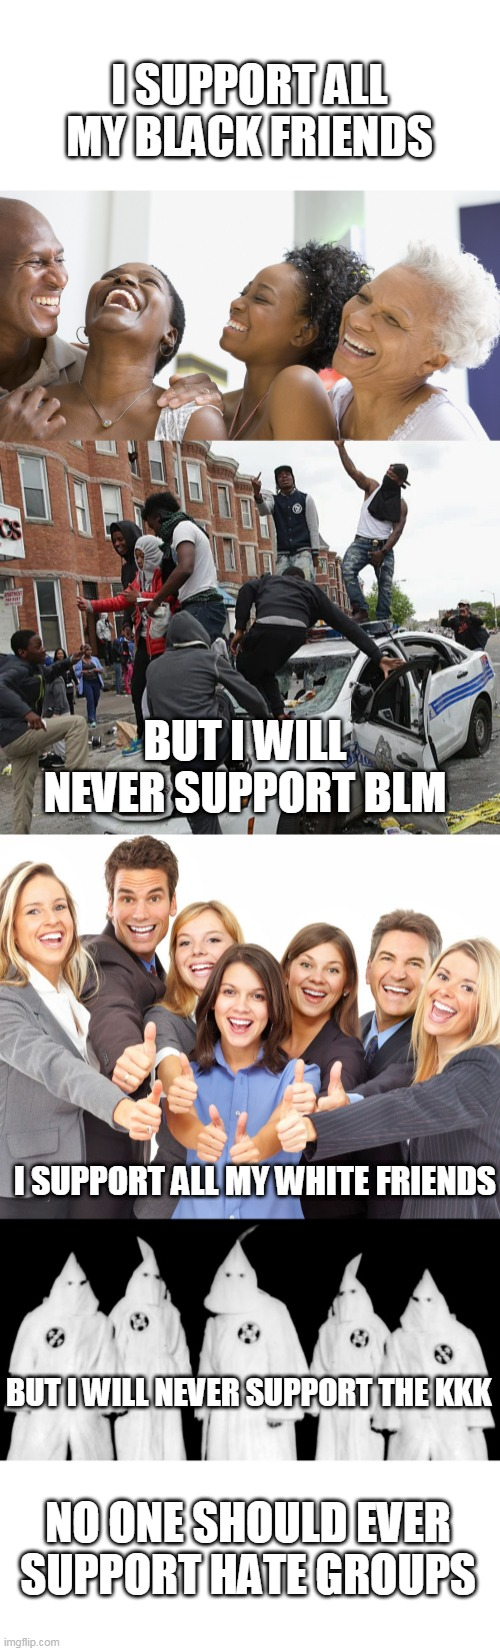 HATE GROUPS ARE A PROBLEM |  I SUPPORT ALL MY BLACK FRIENDS; BUT I WILL NEVER SUPPORT BLM; I SUPPORT ALL MY WHITE FRIENDS; BUT I WILL NEVER SUPPORT THE KKK; NO ONE SHOULD EVER SUPPORT HATE GROUPS | image tagged in kkk,white people,black people laughing,blm | made w/ Imgflip meme maker